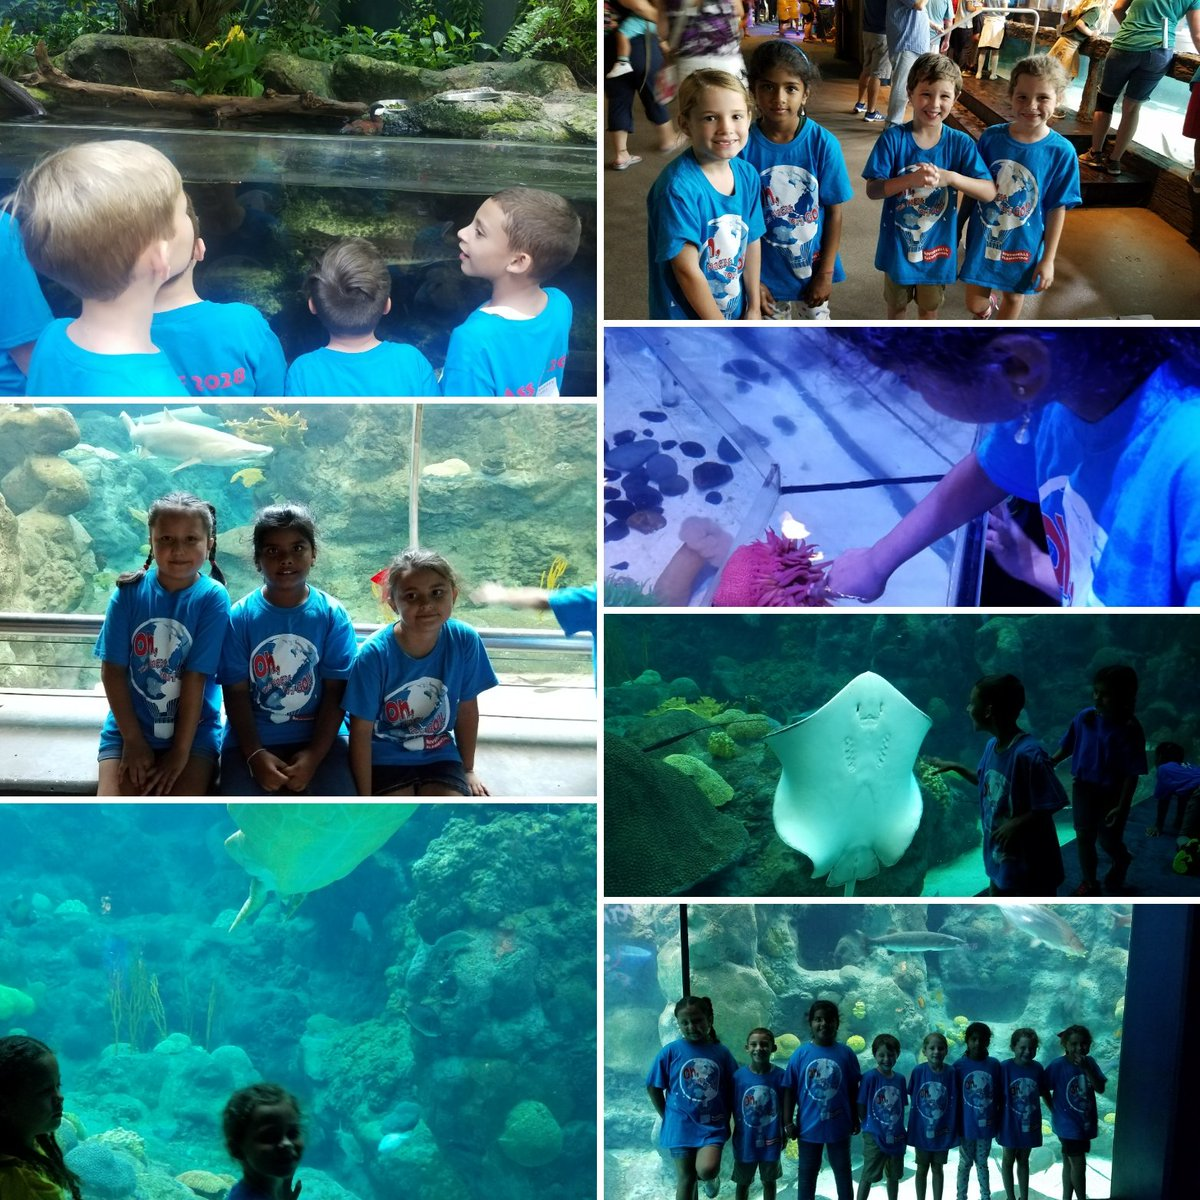 Fun times at the Florida Aquarium! @HCPSRiverhills #fieldtrip #classshirts #claasof 2028